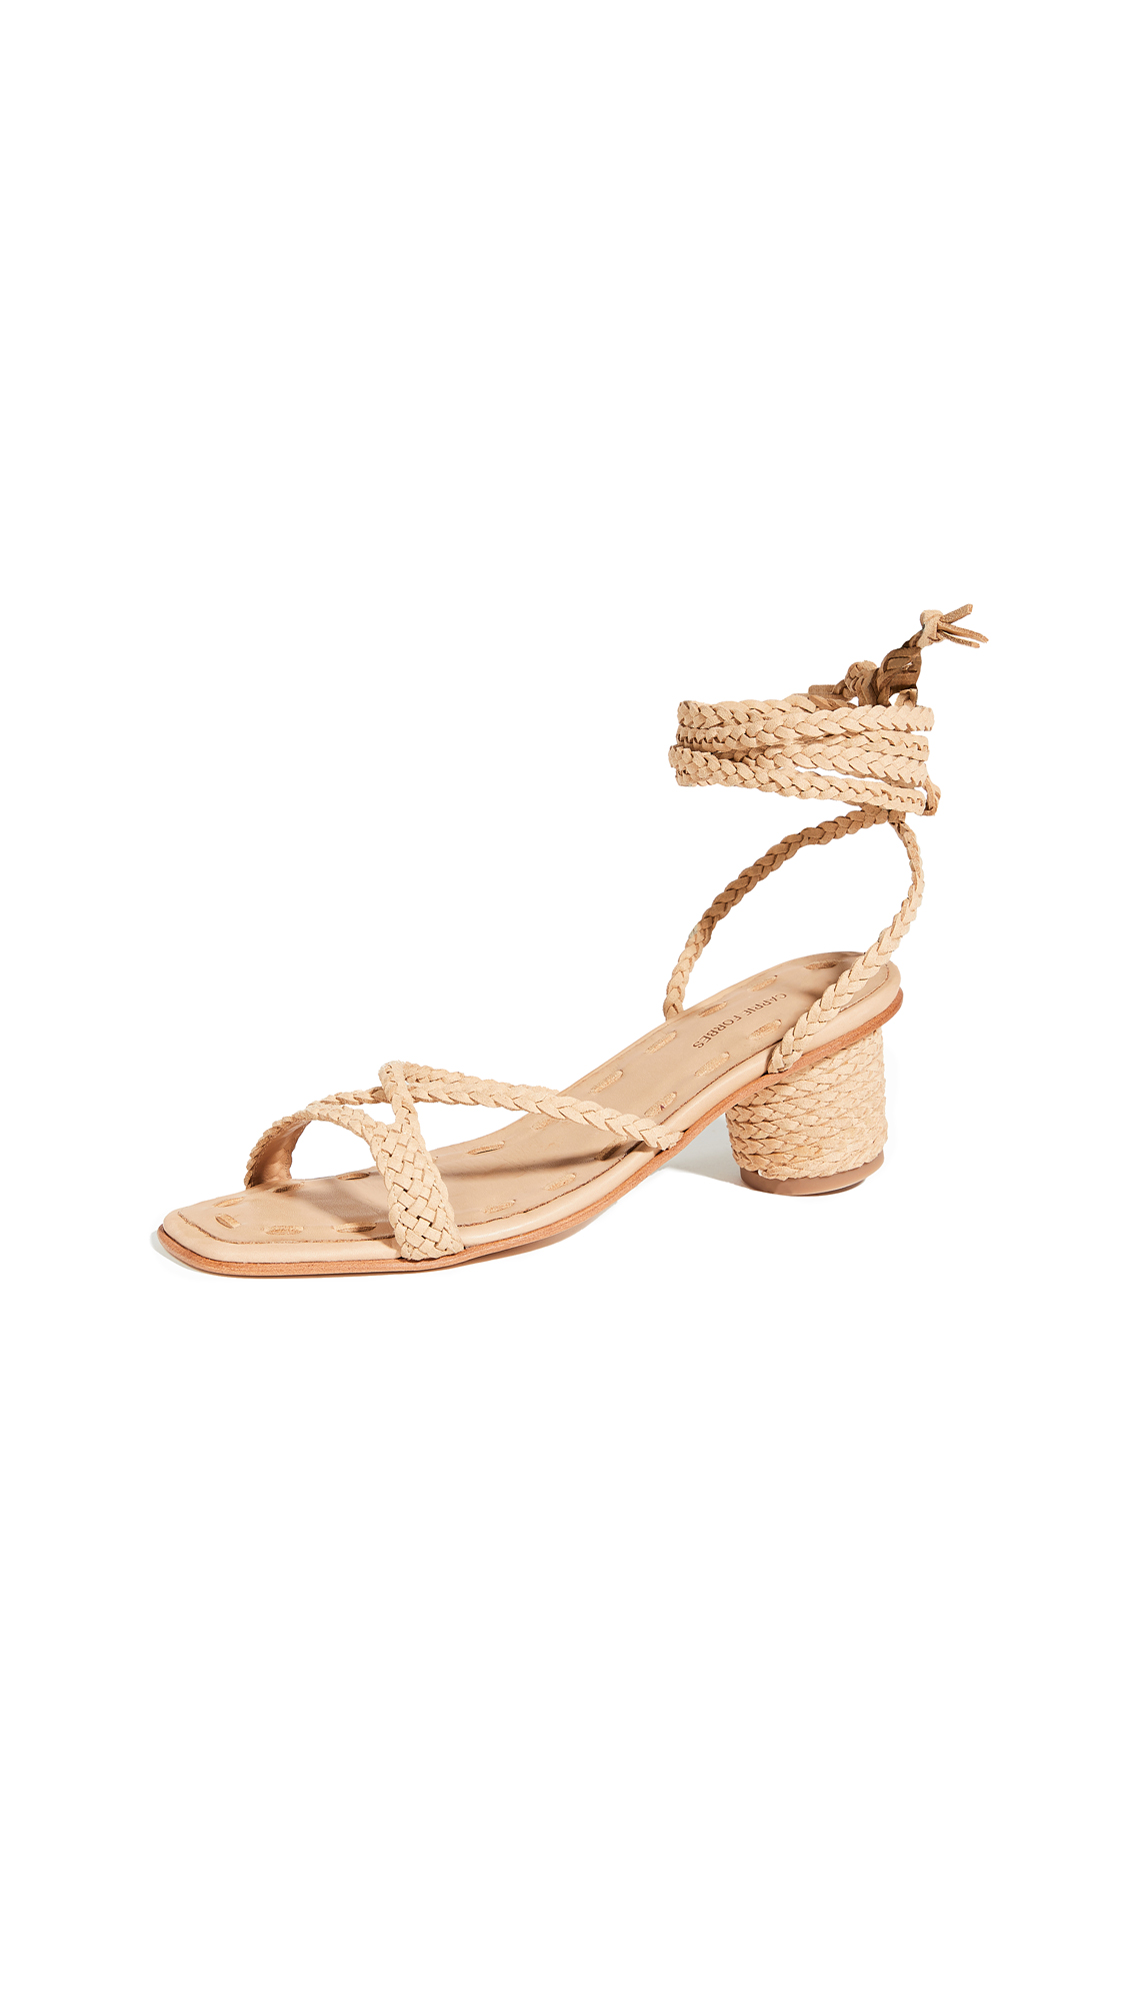 Buy Carrie Forbes Mai Wrap Sandals online, shop Carrie Forbes